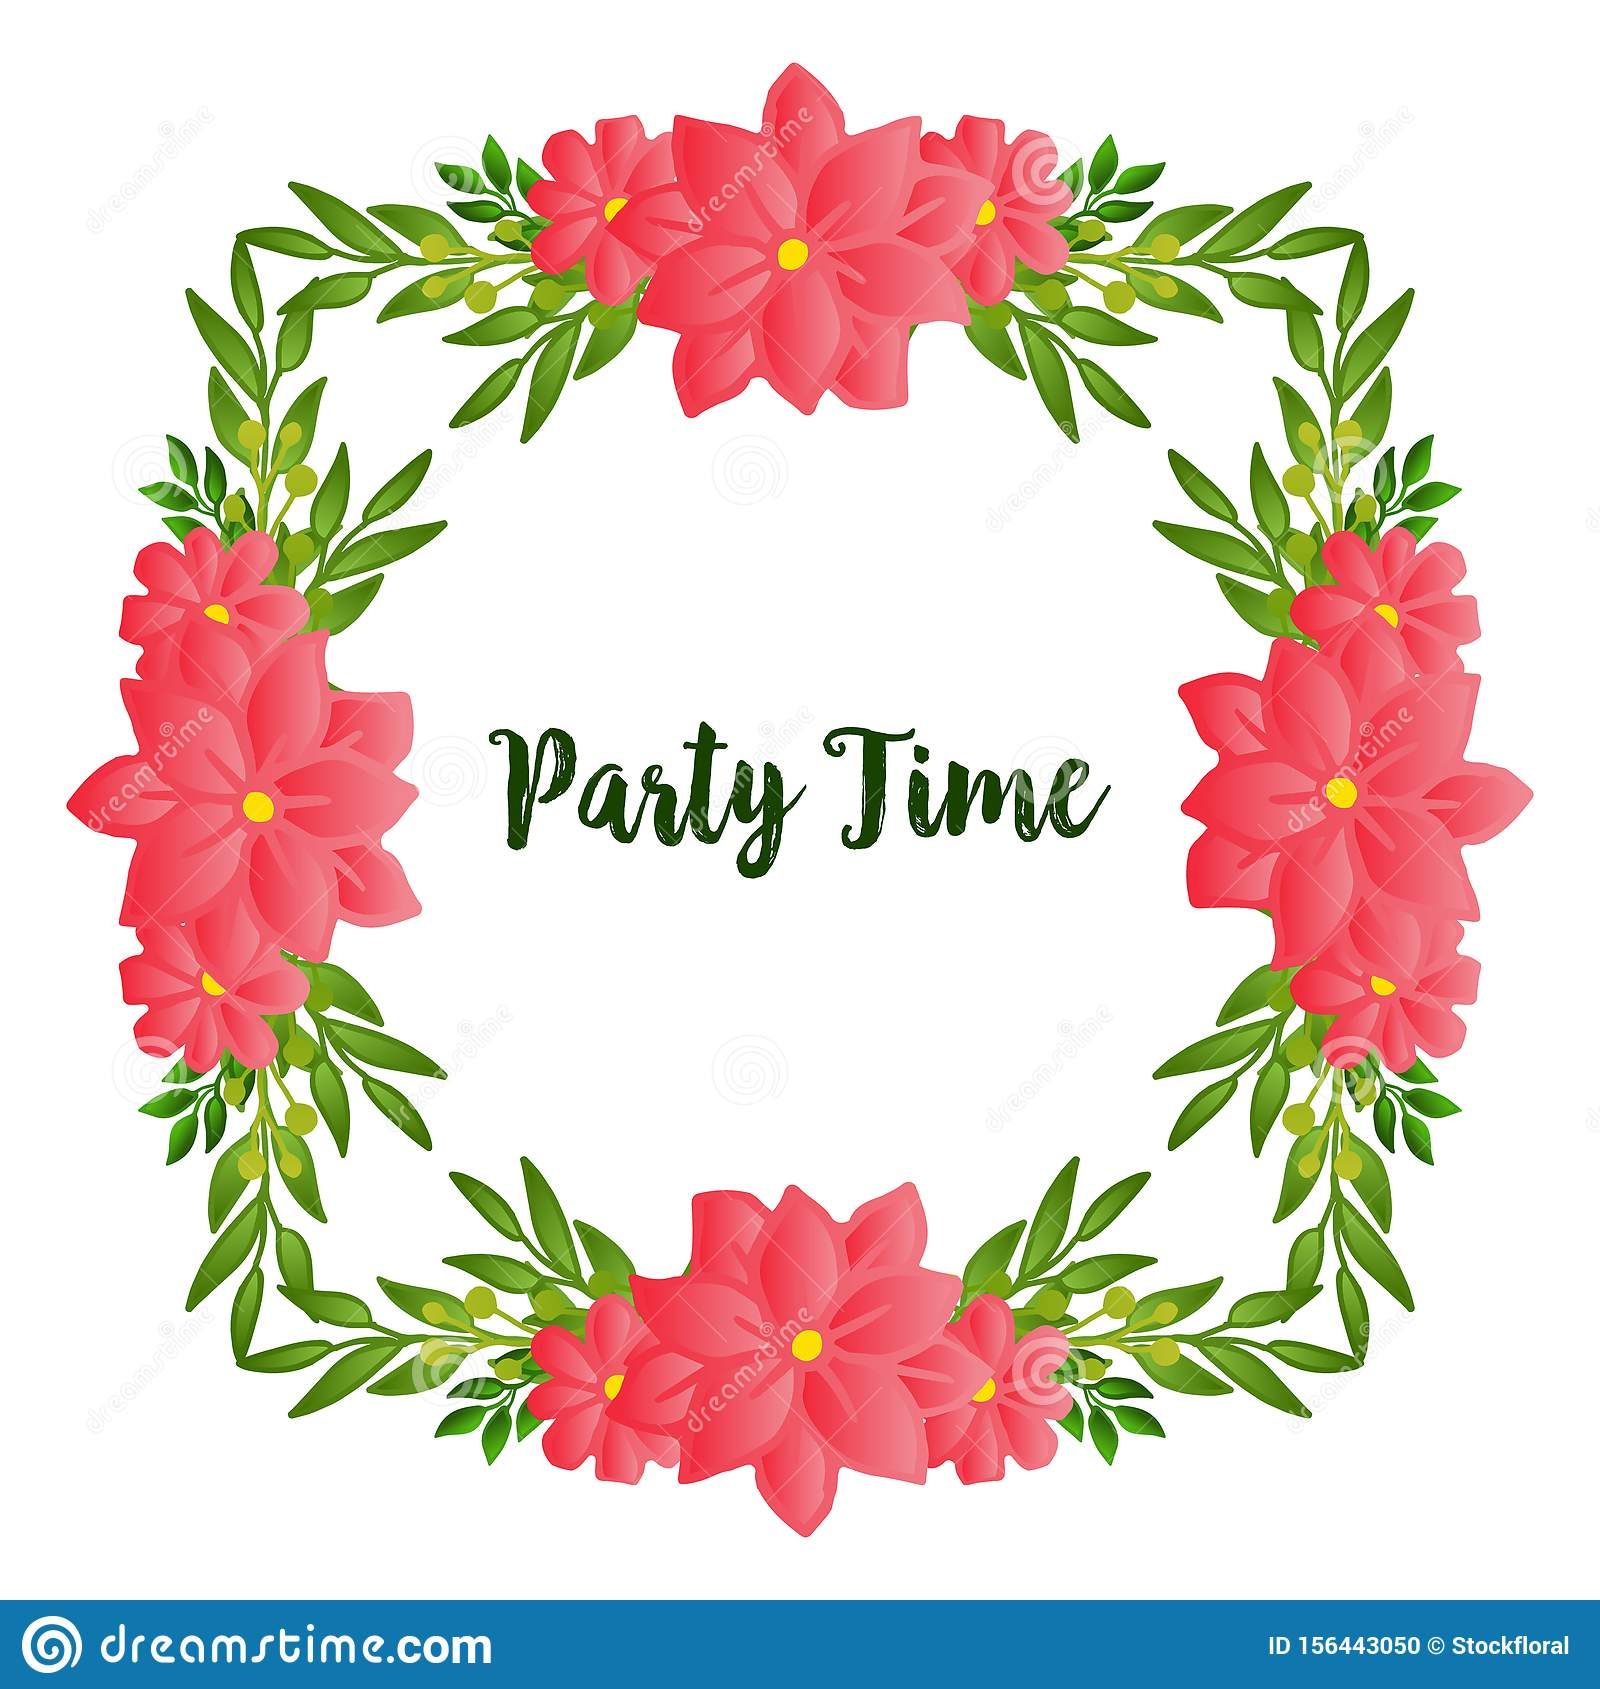 Various style green leafy flower frame, for design of party time card. Vector